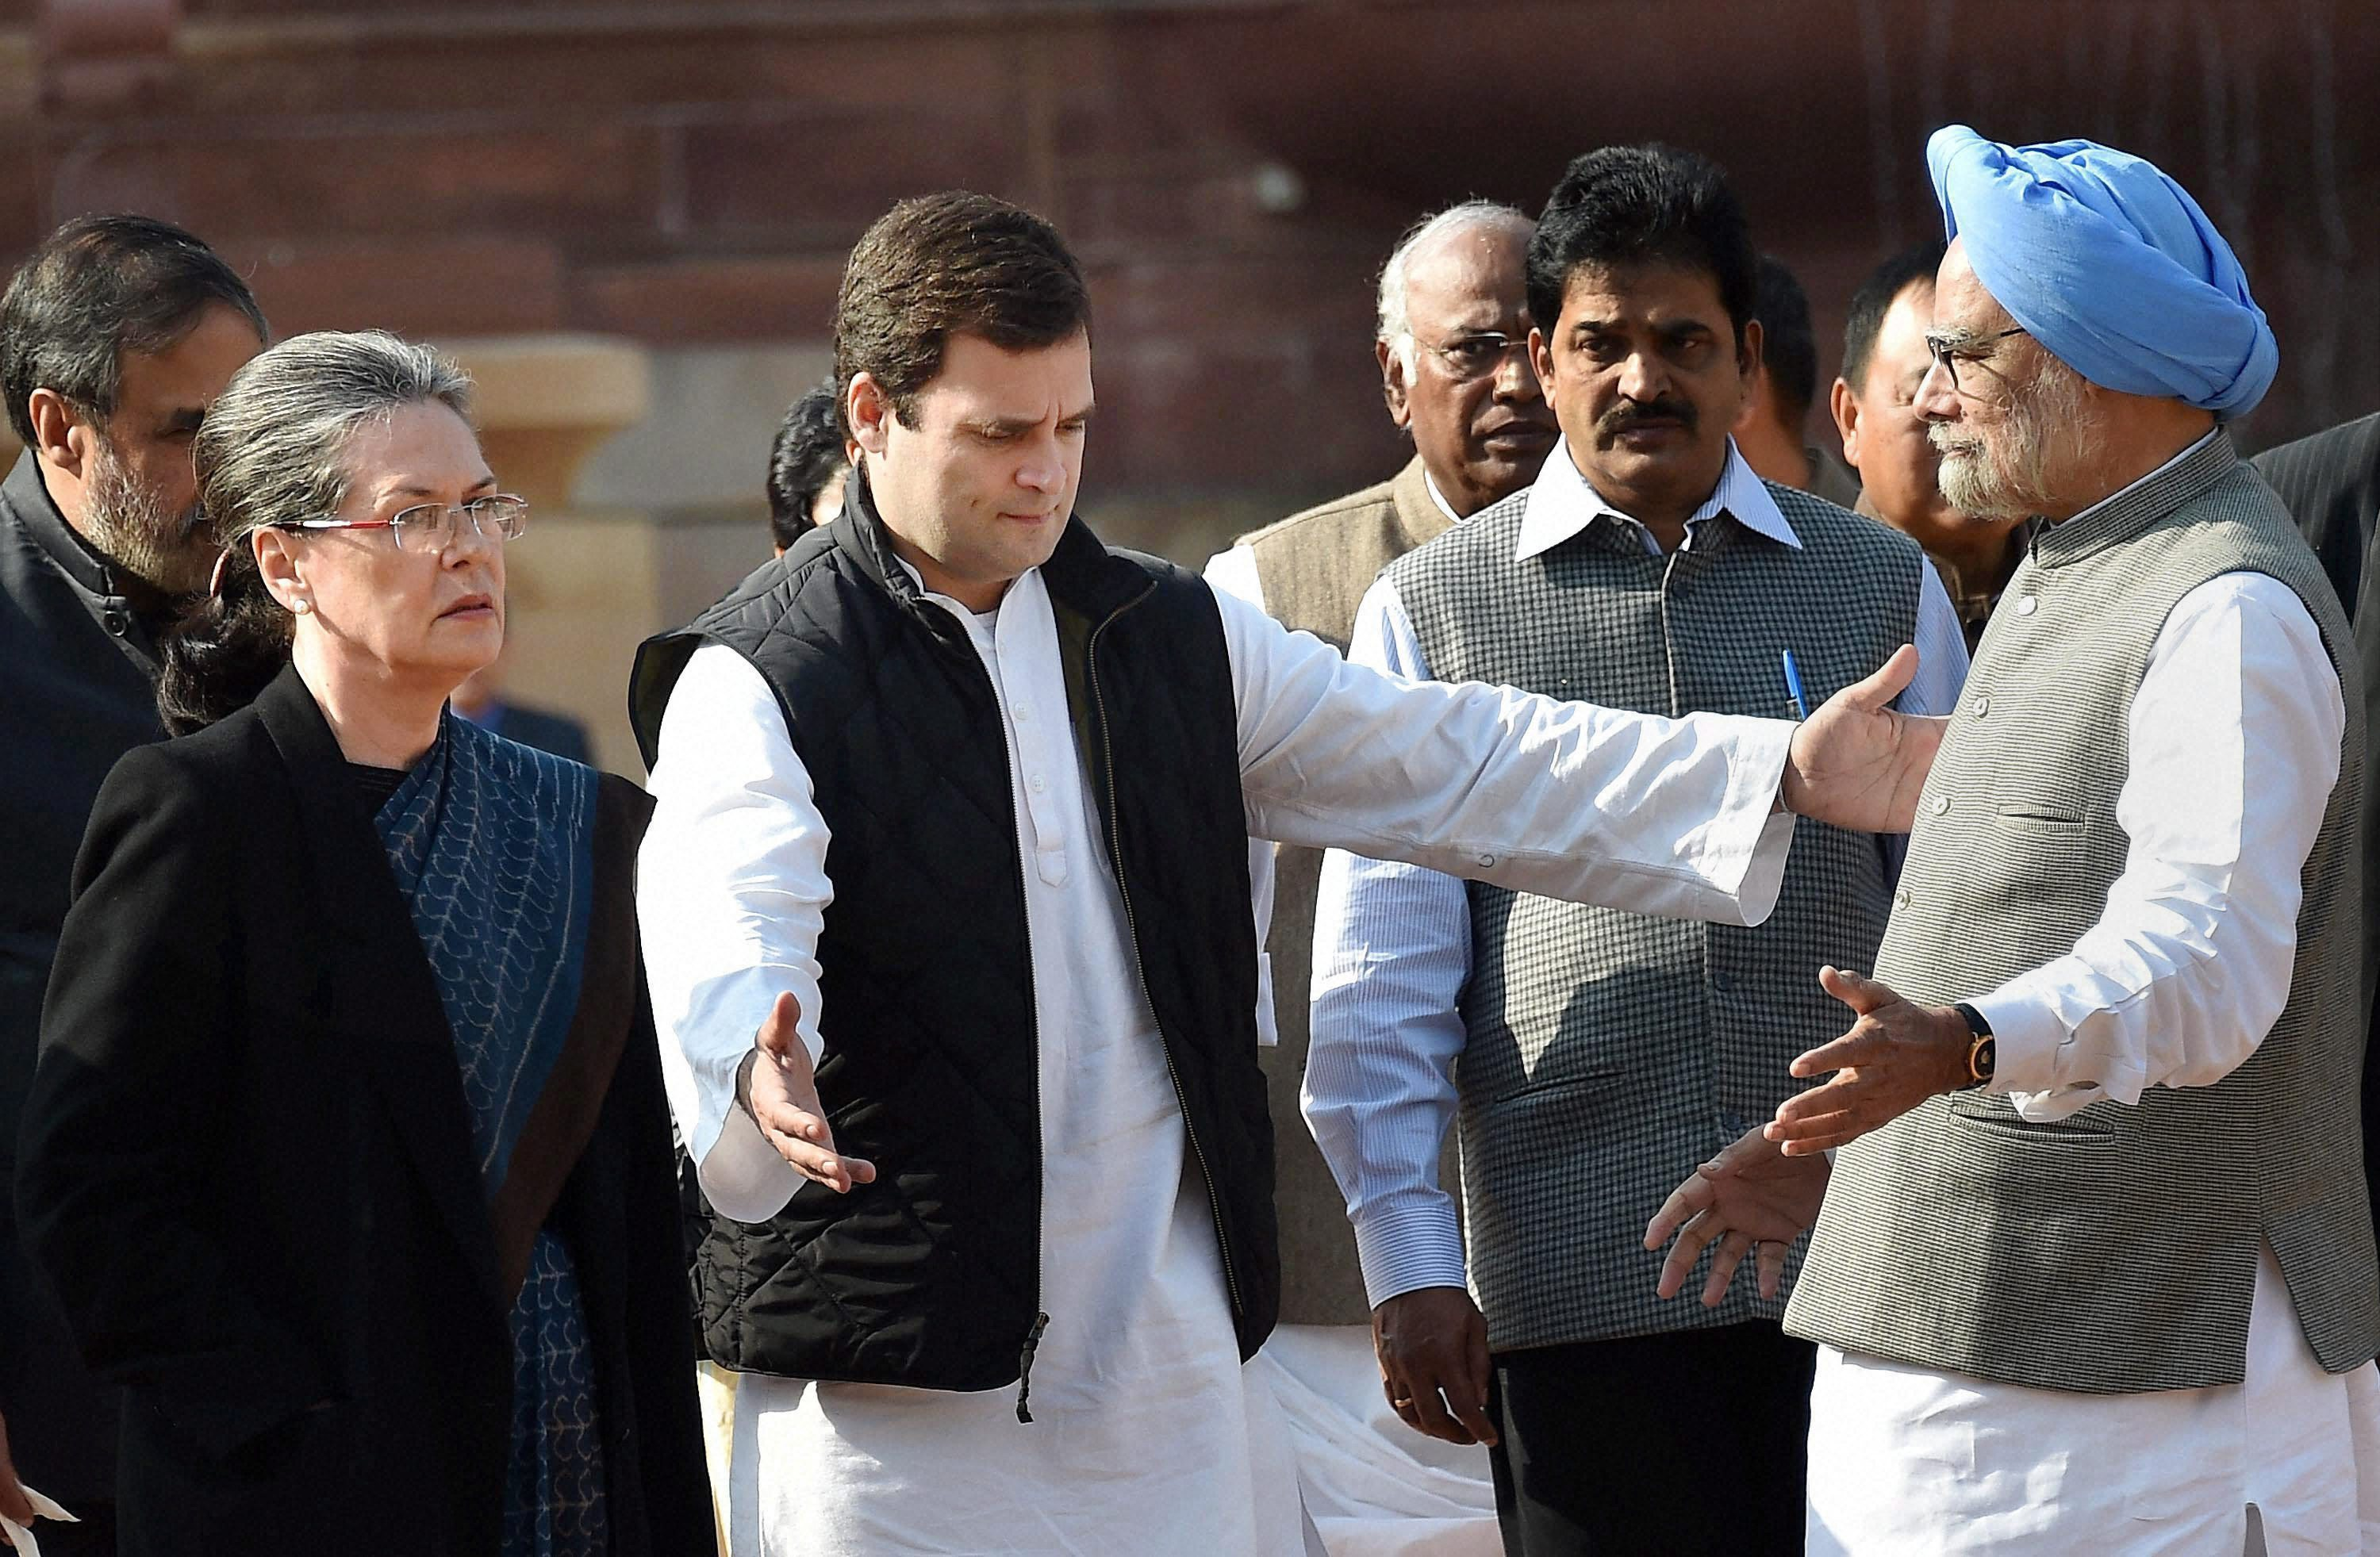 Congress President Sonia Gandhi with party Vice President Rahul Gandhi, former PM Manmohan Singh and other party leaders after meeting with President Pranab Mukherjee at Rashtrapati Bhavan in New Delhi on Wednesday. Credit: PTI Photo by Vijay Kumar Joshi